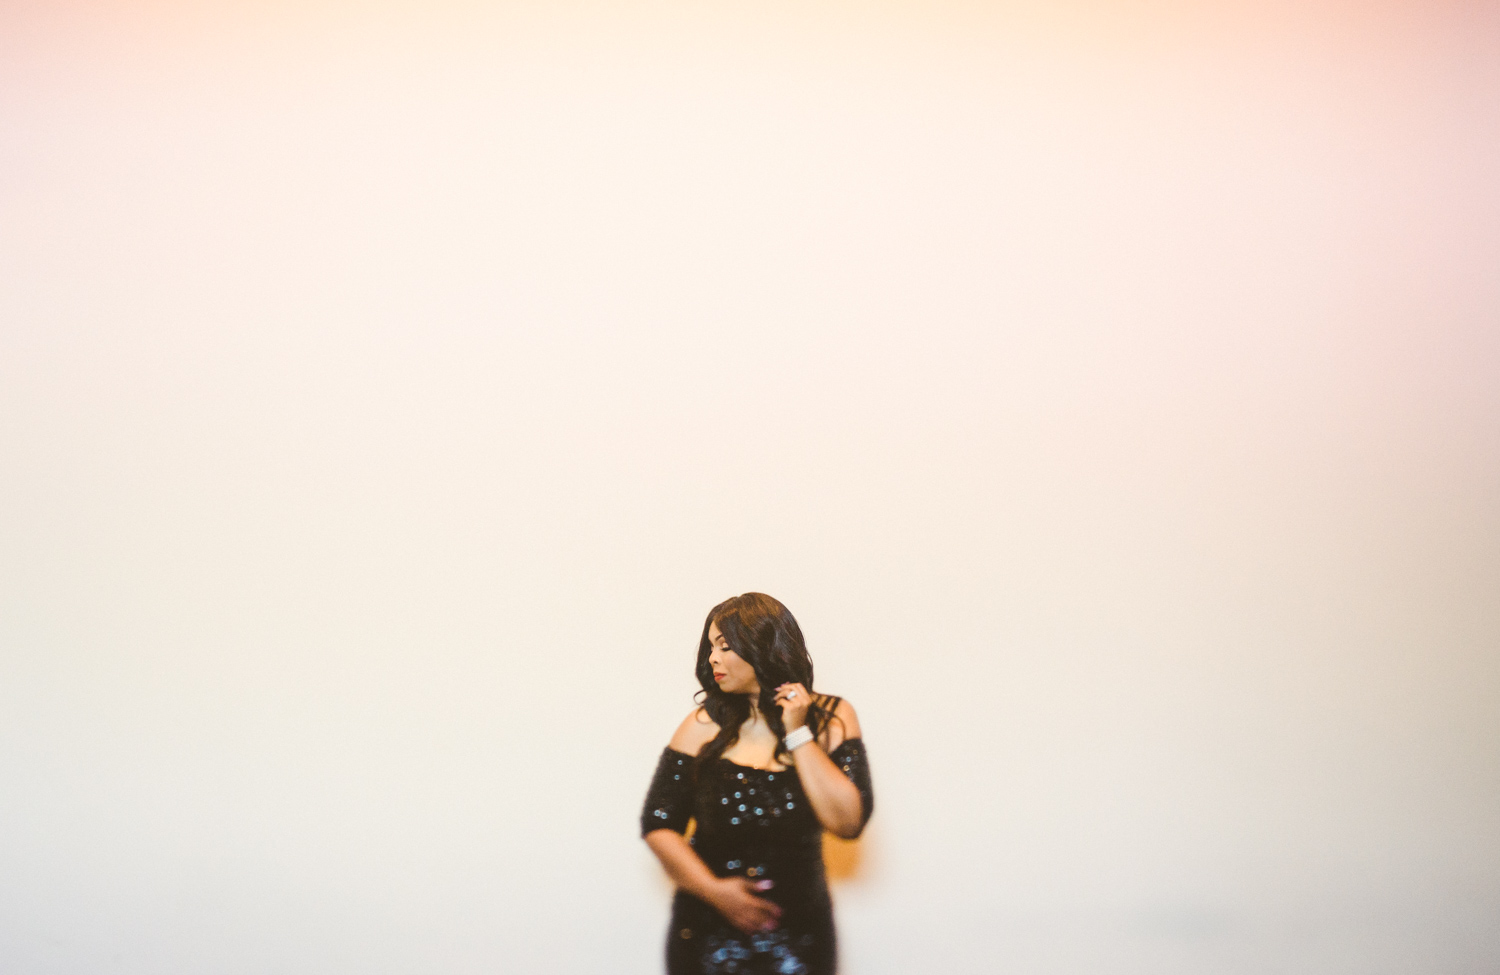 001 - richmond wedding photographer nathan mitchell.jpg